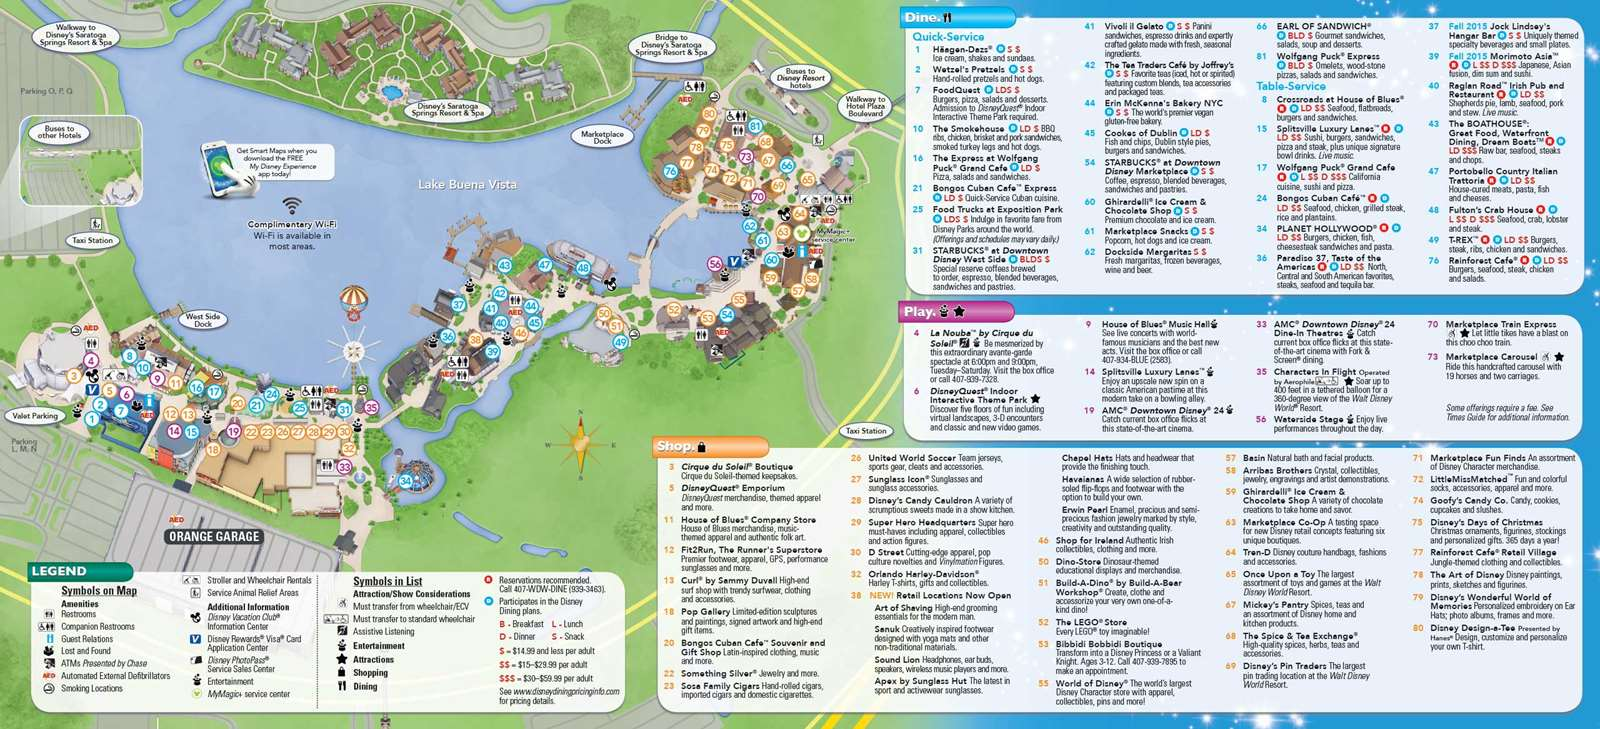 PHOTOS - New Downtown Disney guide map includes Disney Springs name ...